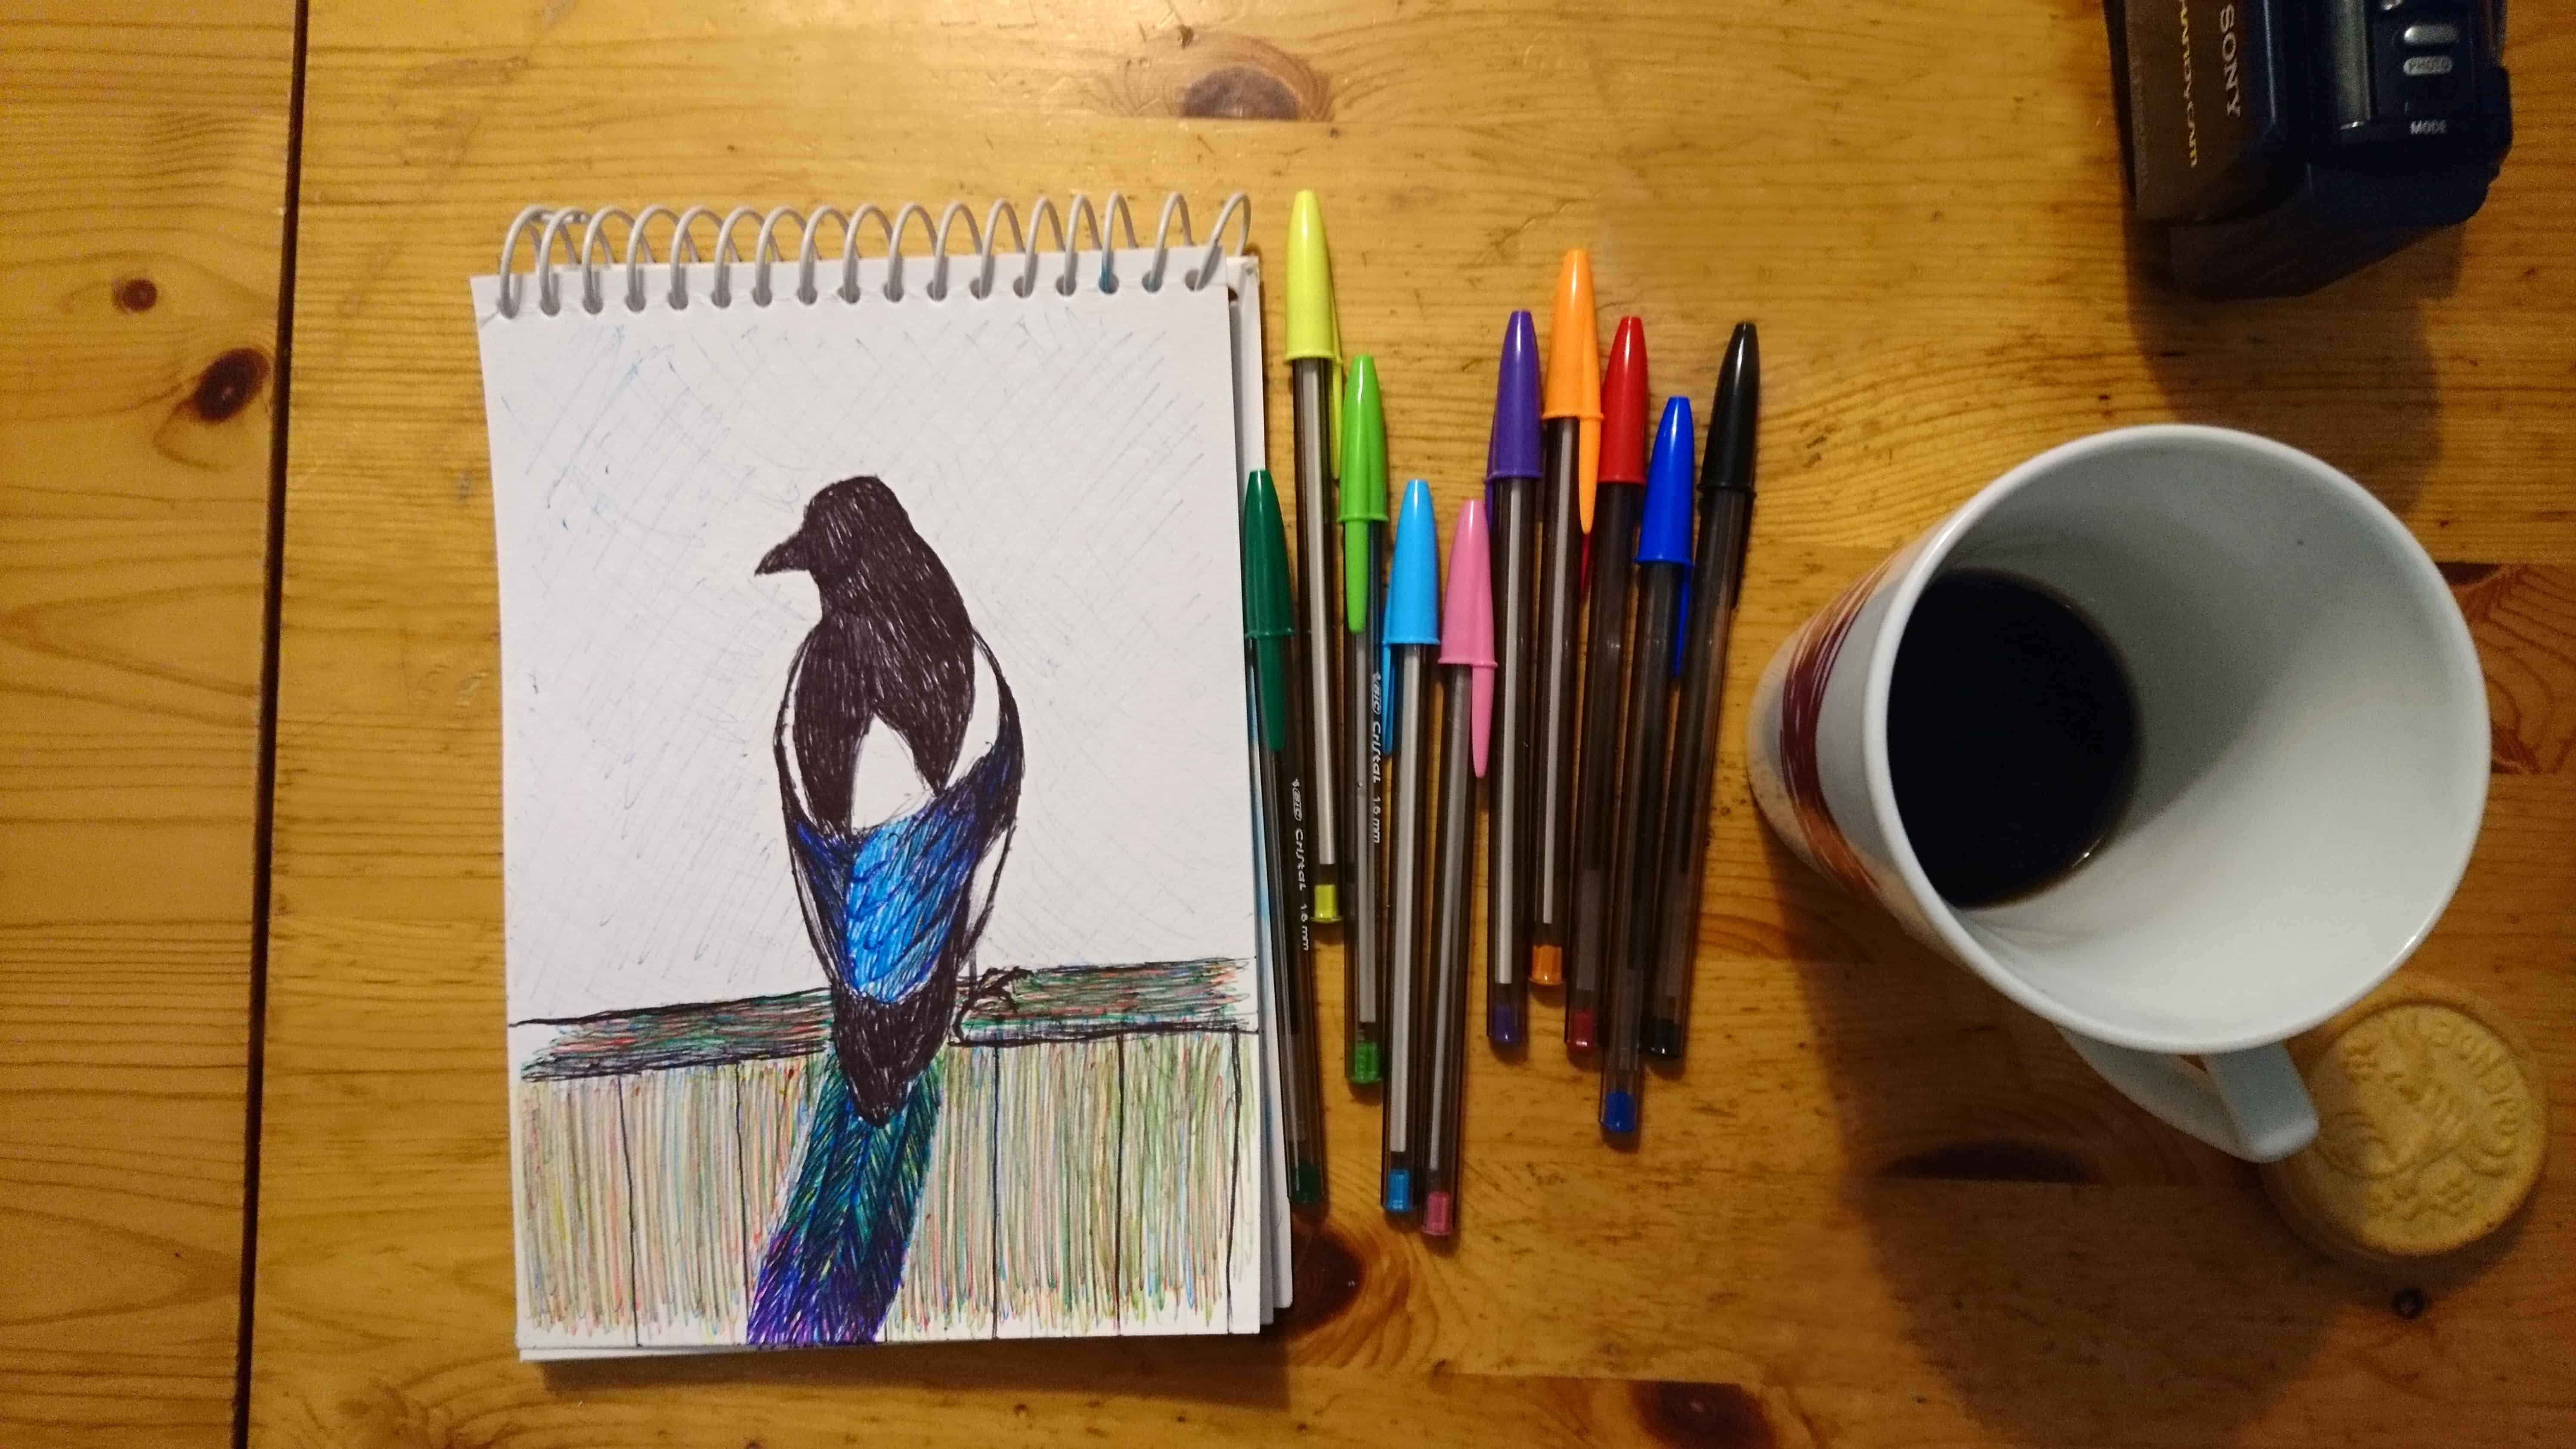 Magpie Drawing Created With Ballpoint Pens